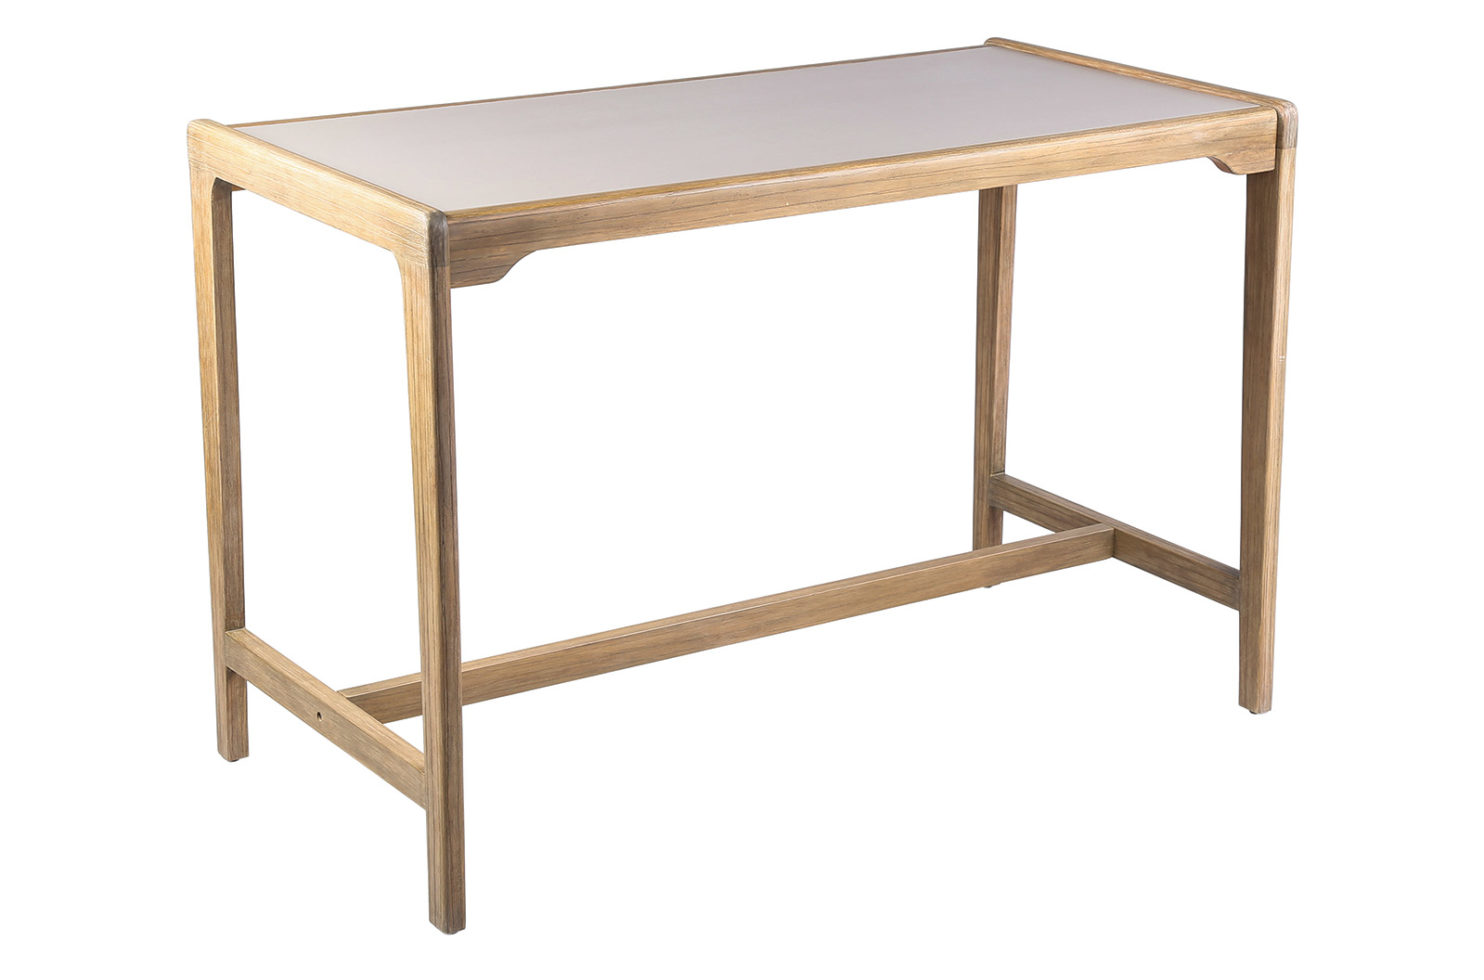 oceans counter table 504FT410P2 E 1 3Q